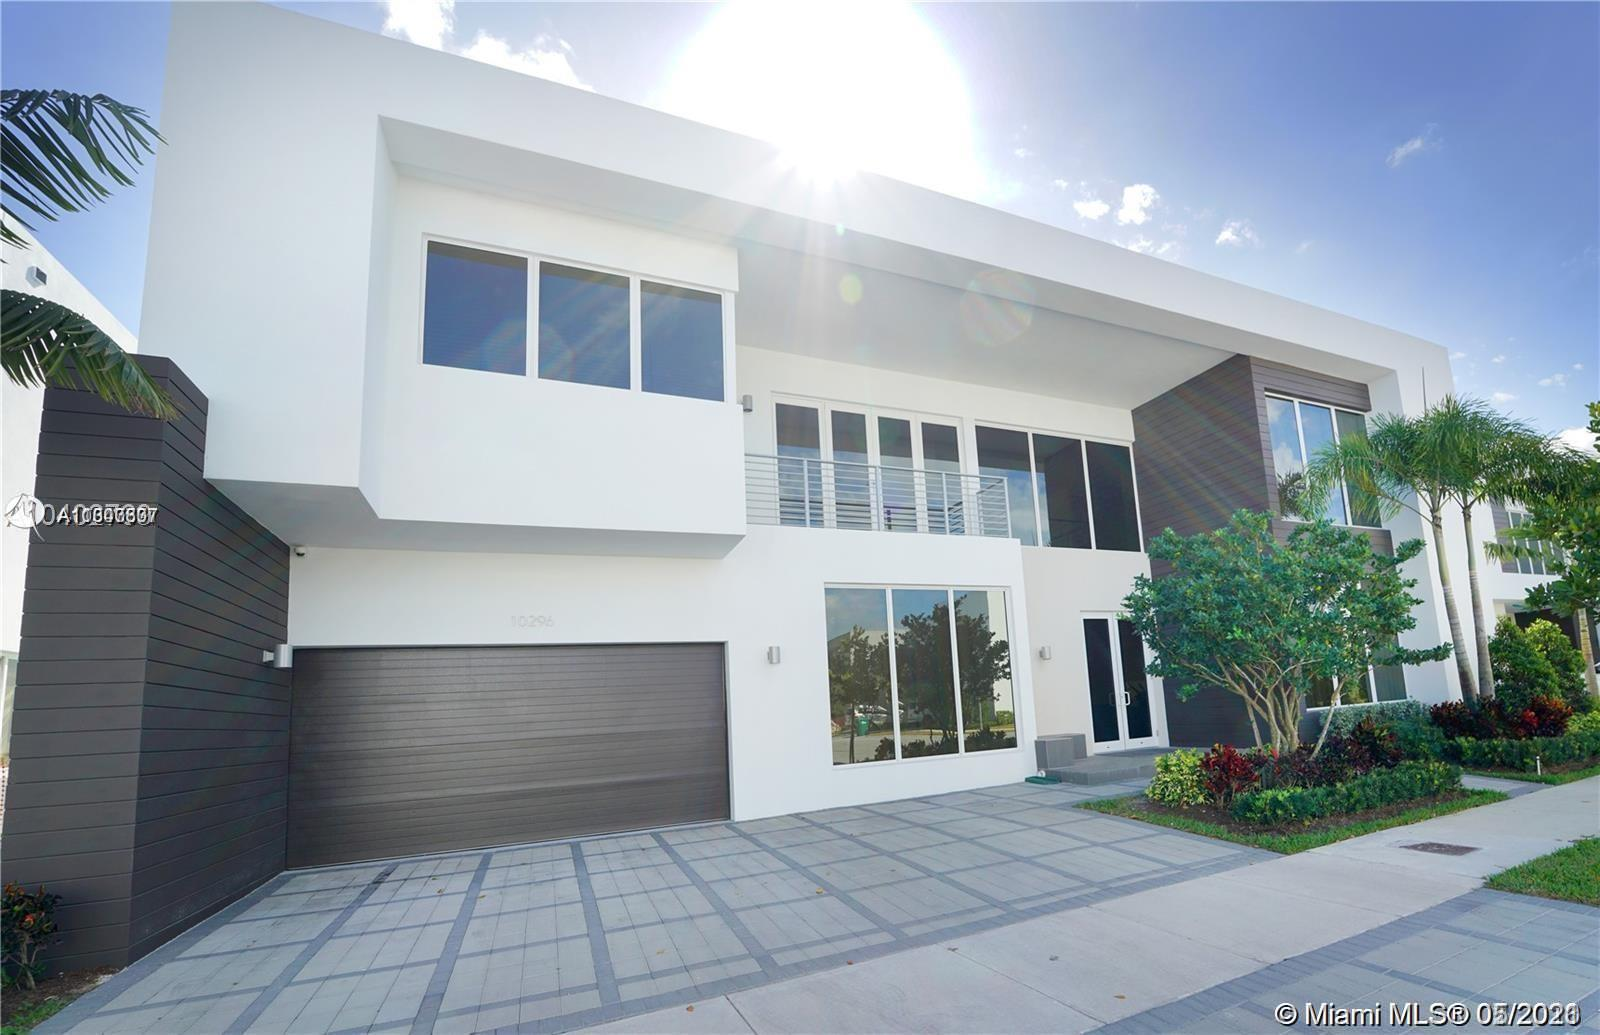 Doral Commons Residential - 10296 NW 74TH TER, Miami, FL 33178